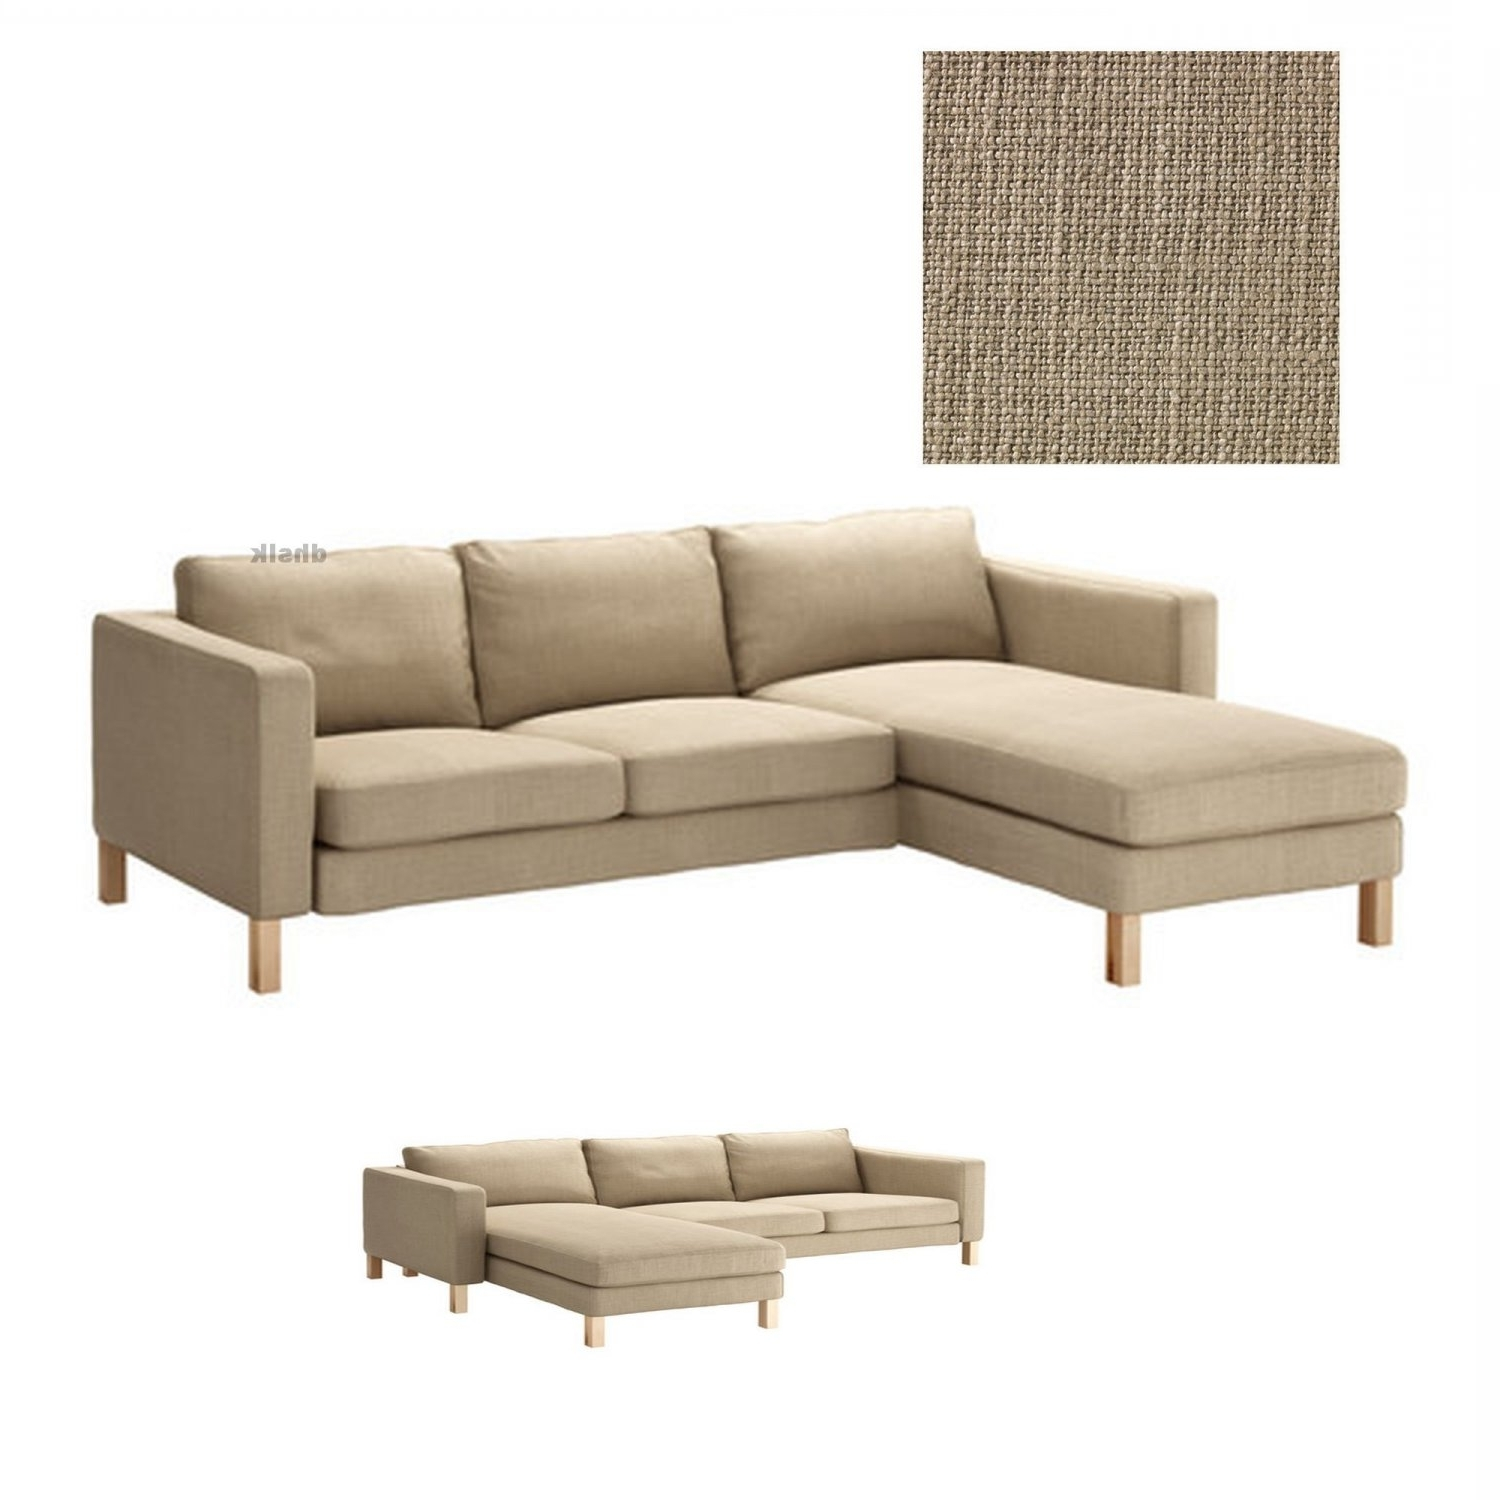 Well Known Karlstad Chaise Covers Pertaining To Karlstad Chaise Cover – Mariaalcocer (View 5 of 15)